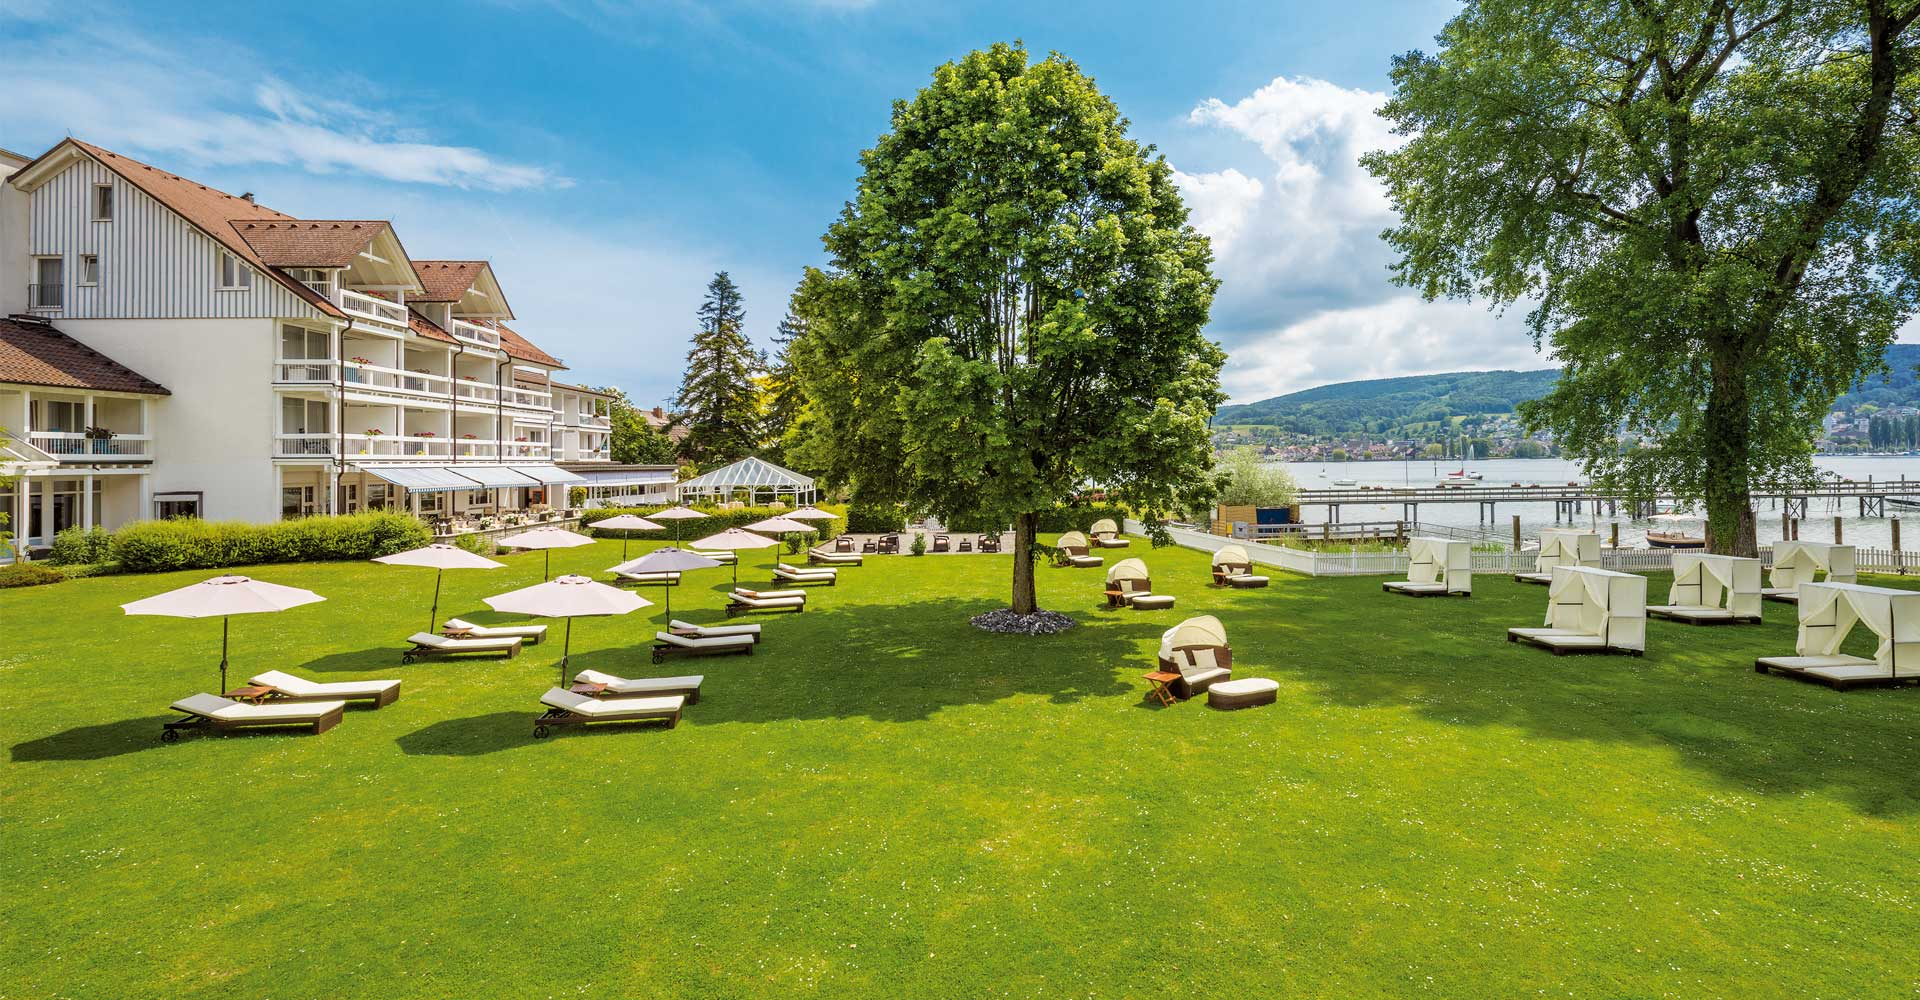 OPUS Marketing / Projekte / Hotel Hoeri am Bodensee / Bildsprache / Hotelbilder